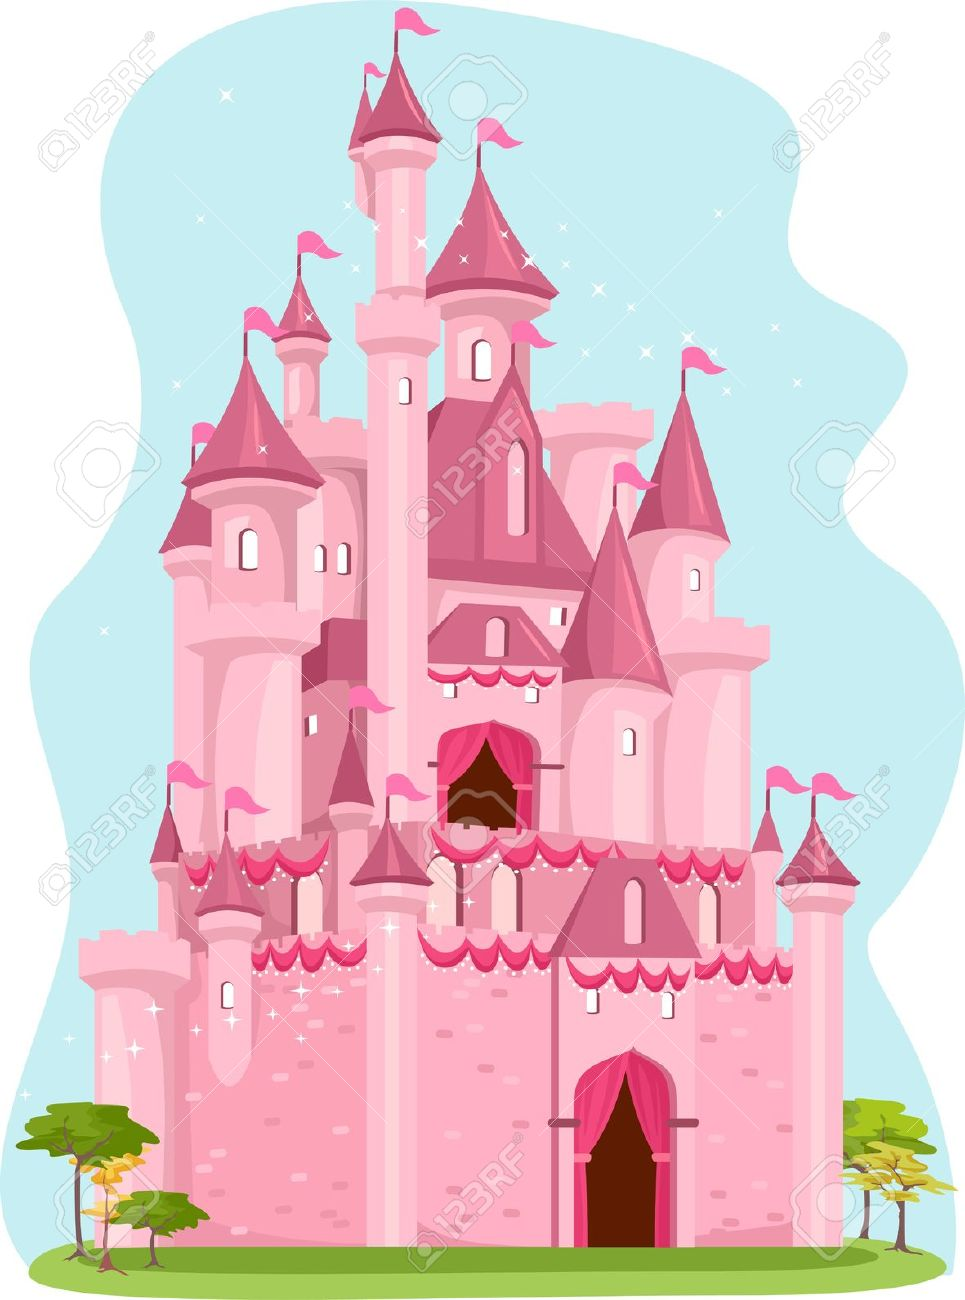 Prinzessin Sofia Schloss Noble Castle Clipart 20 Free Cliparts | Download Images On